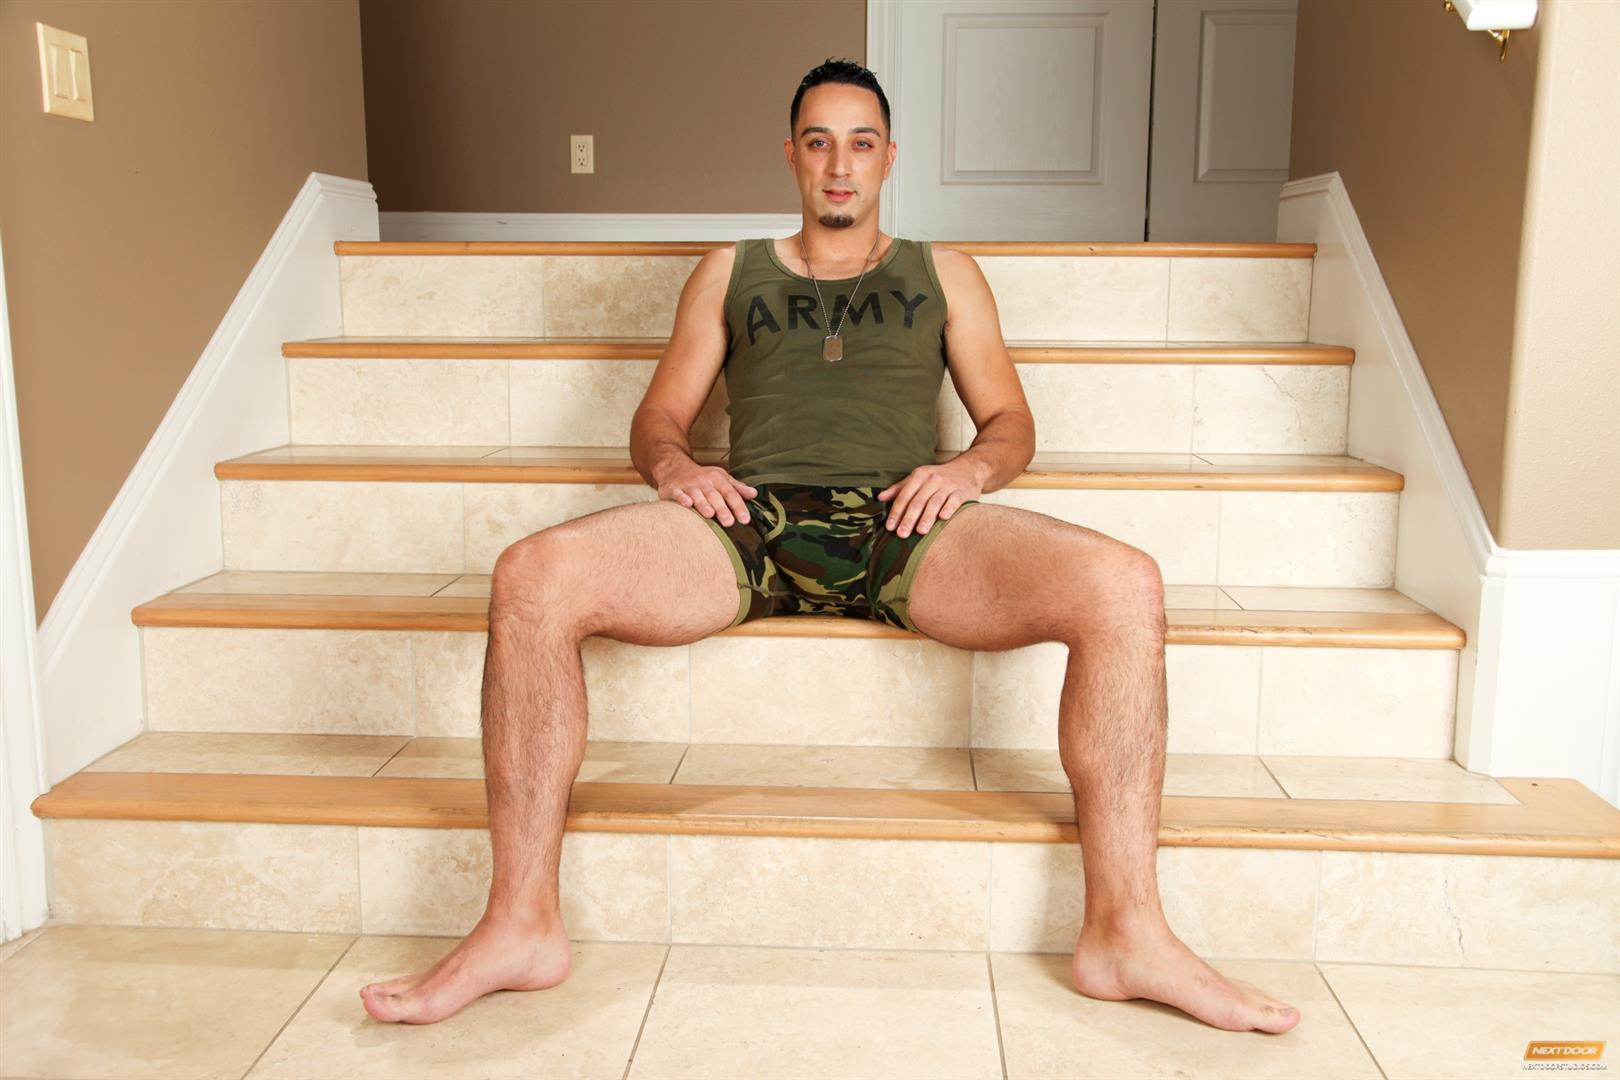 Next-Door-Buddy-Andrew-Fitch-and-Sean-Blue-Military-Army-Guy-With-A-Big-Cock-Fucking-Amateur-Gay-Porn-01 Hung Army Guy Returning From Duty Fucking His Buddy Hard